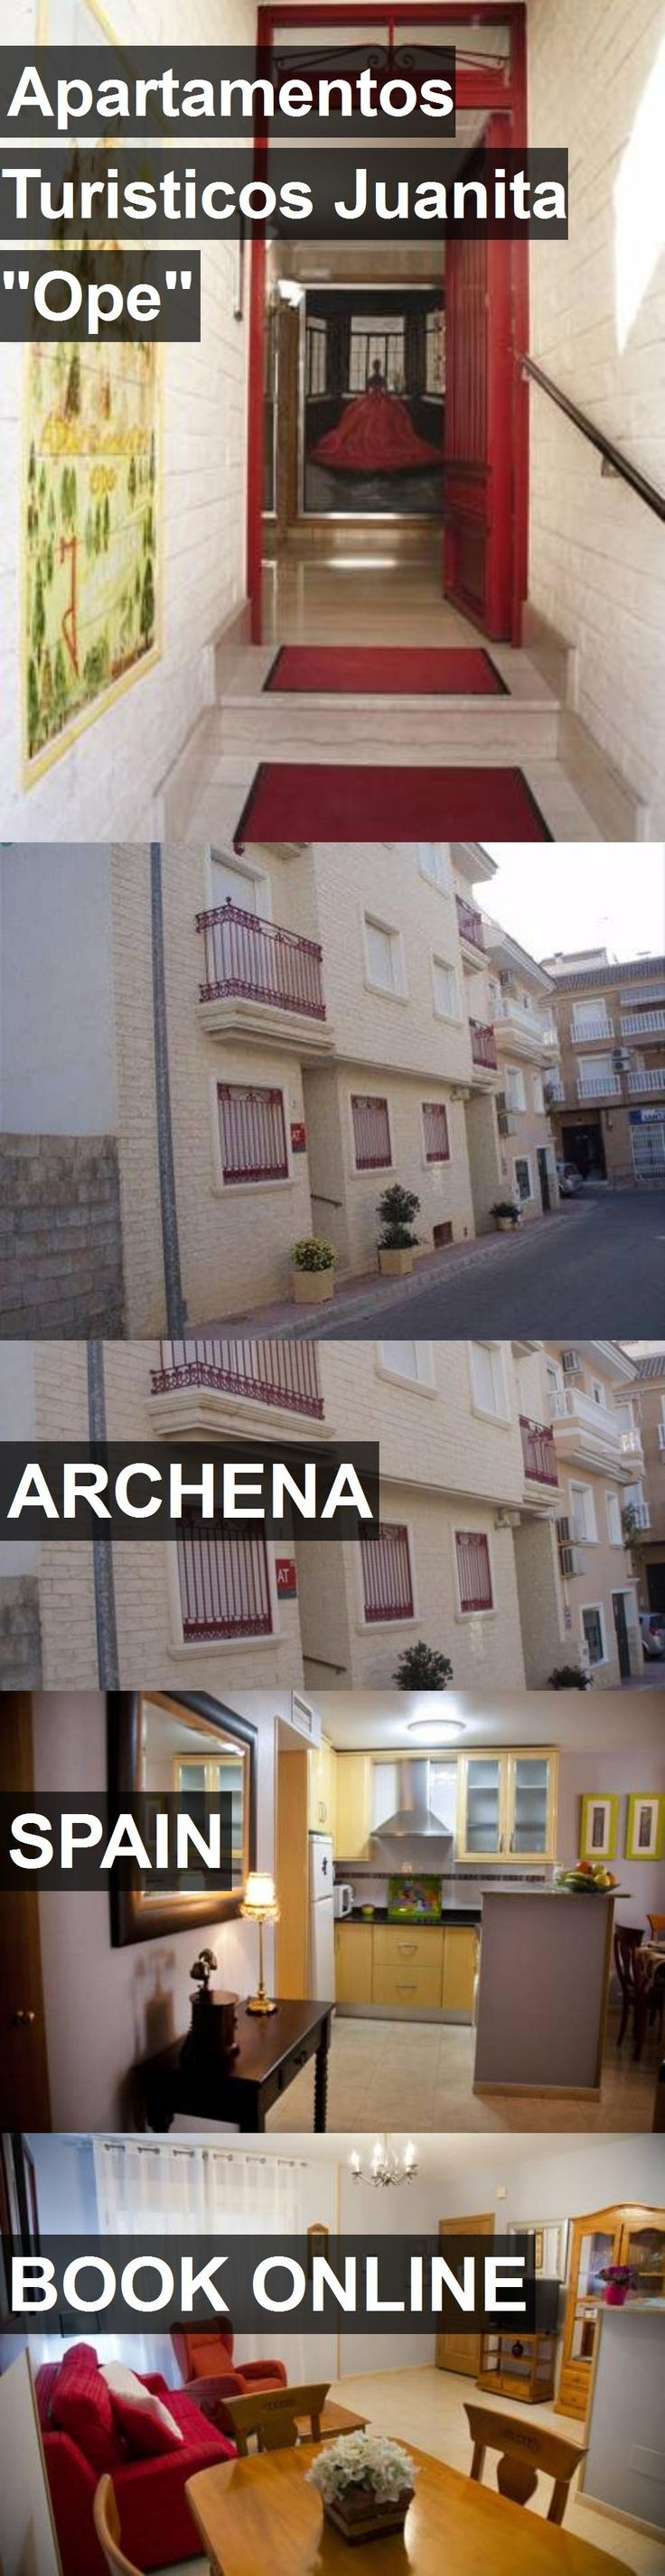 """Hotel Apartamentos Turisticos Juanita """"Ope"""" in Archena, Spain. For more information, photos, reviews and best prices please follow the link. #Spain #Archena #ApartamentosTuristicosJuanita""""Ope"""" #hotel #travel #vacation"""